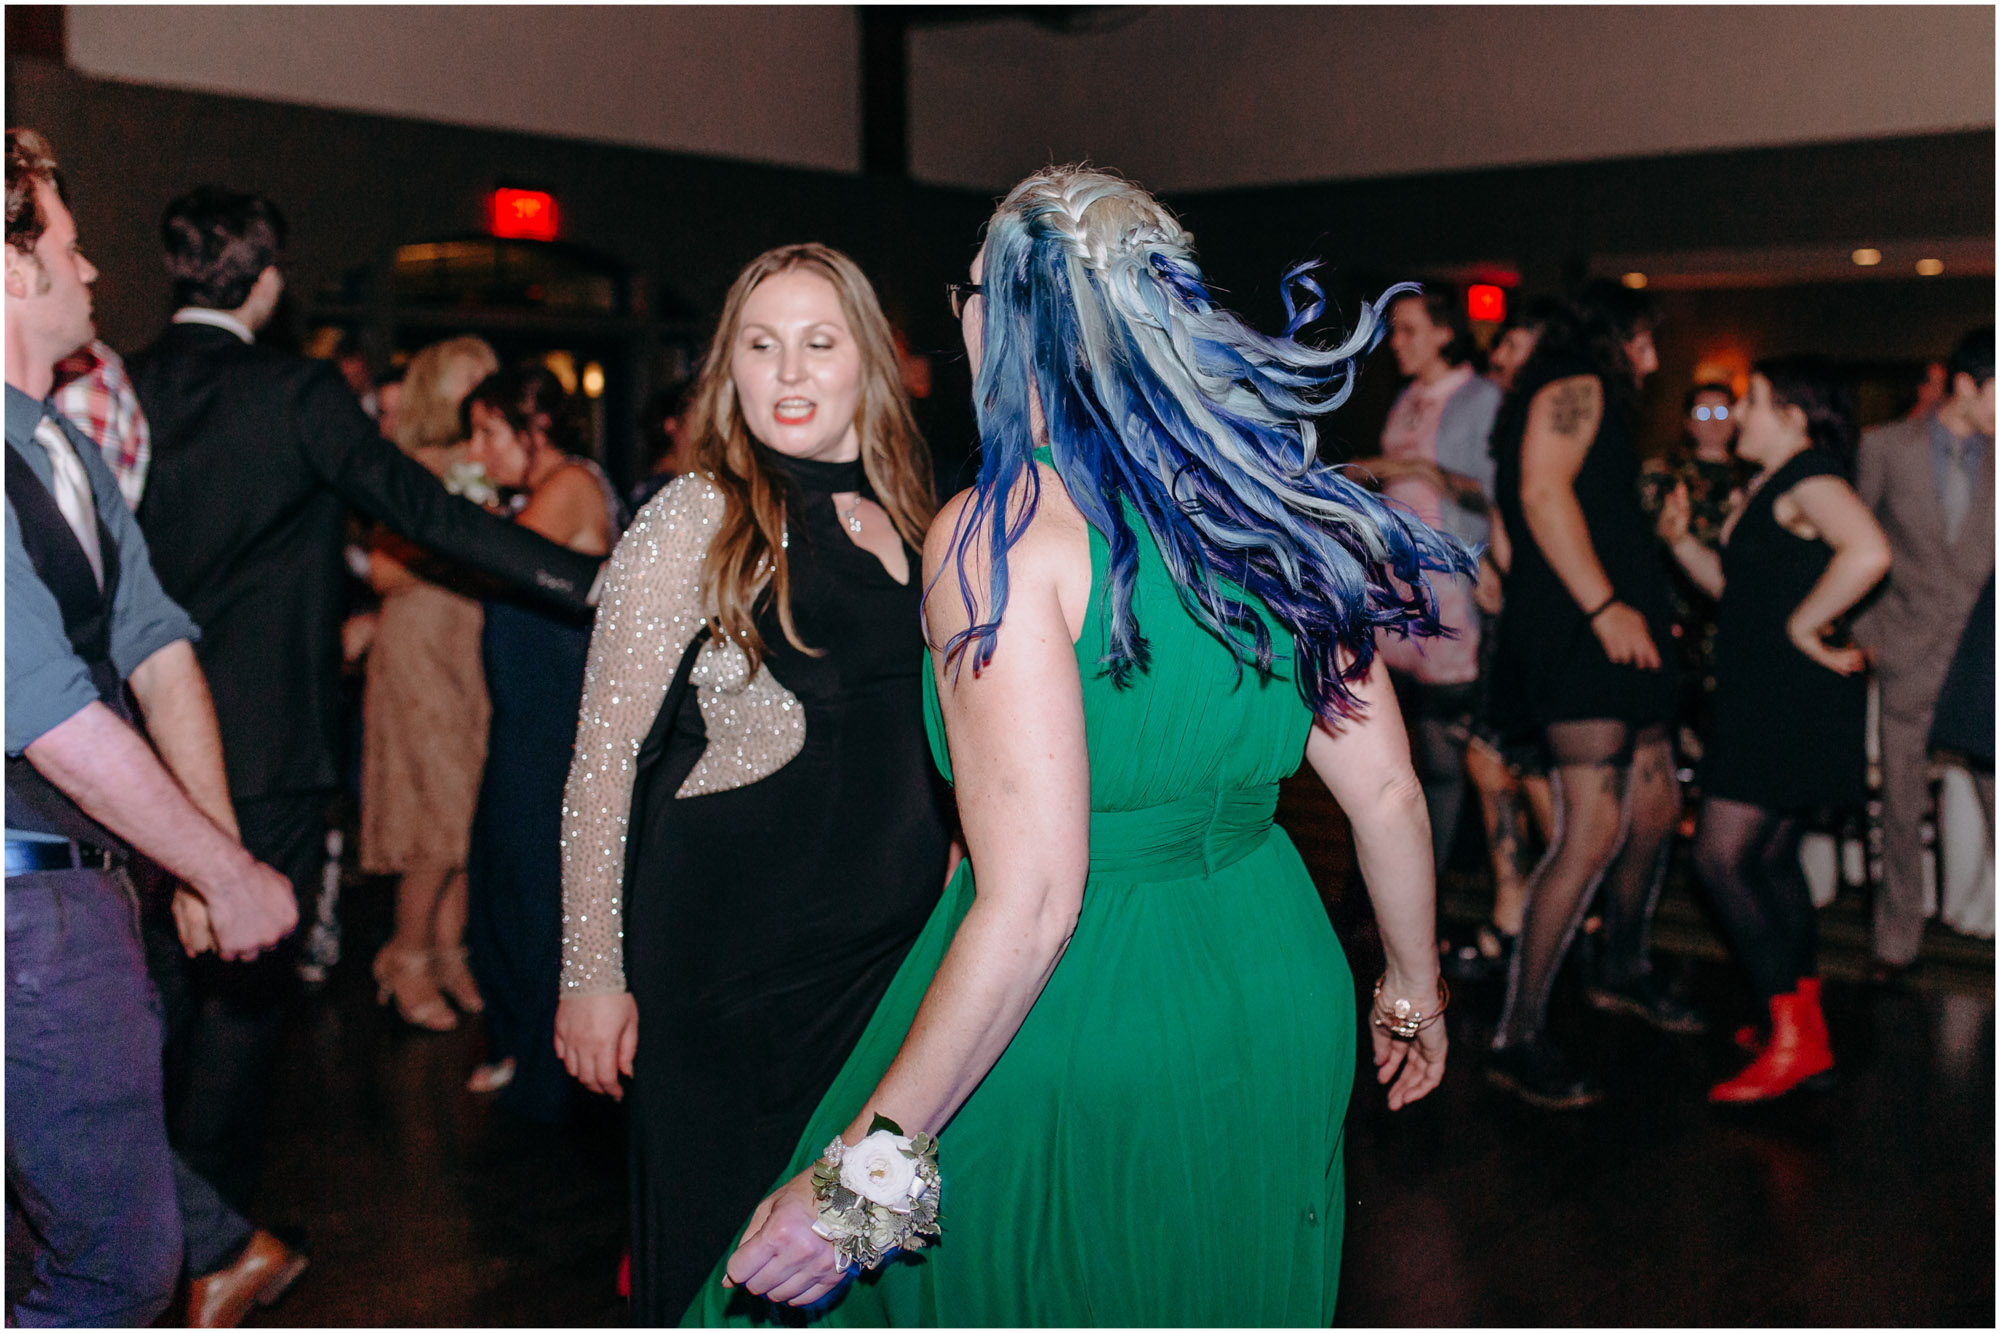 Dancing guests at wedding reception - by Ashleigh Laureen Photography at LaBelle Winery in Amherst, New Hampshire